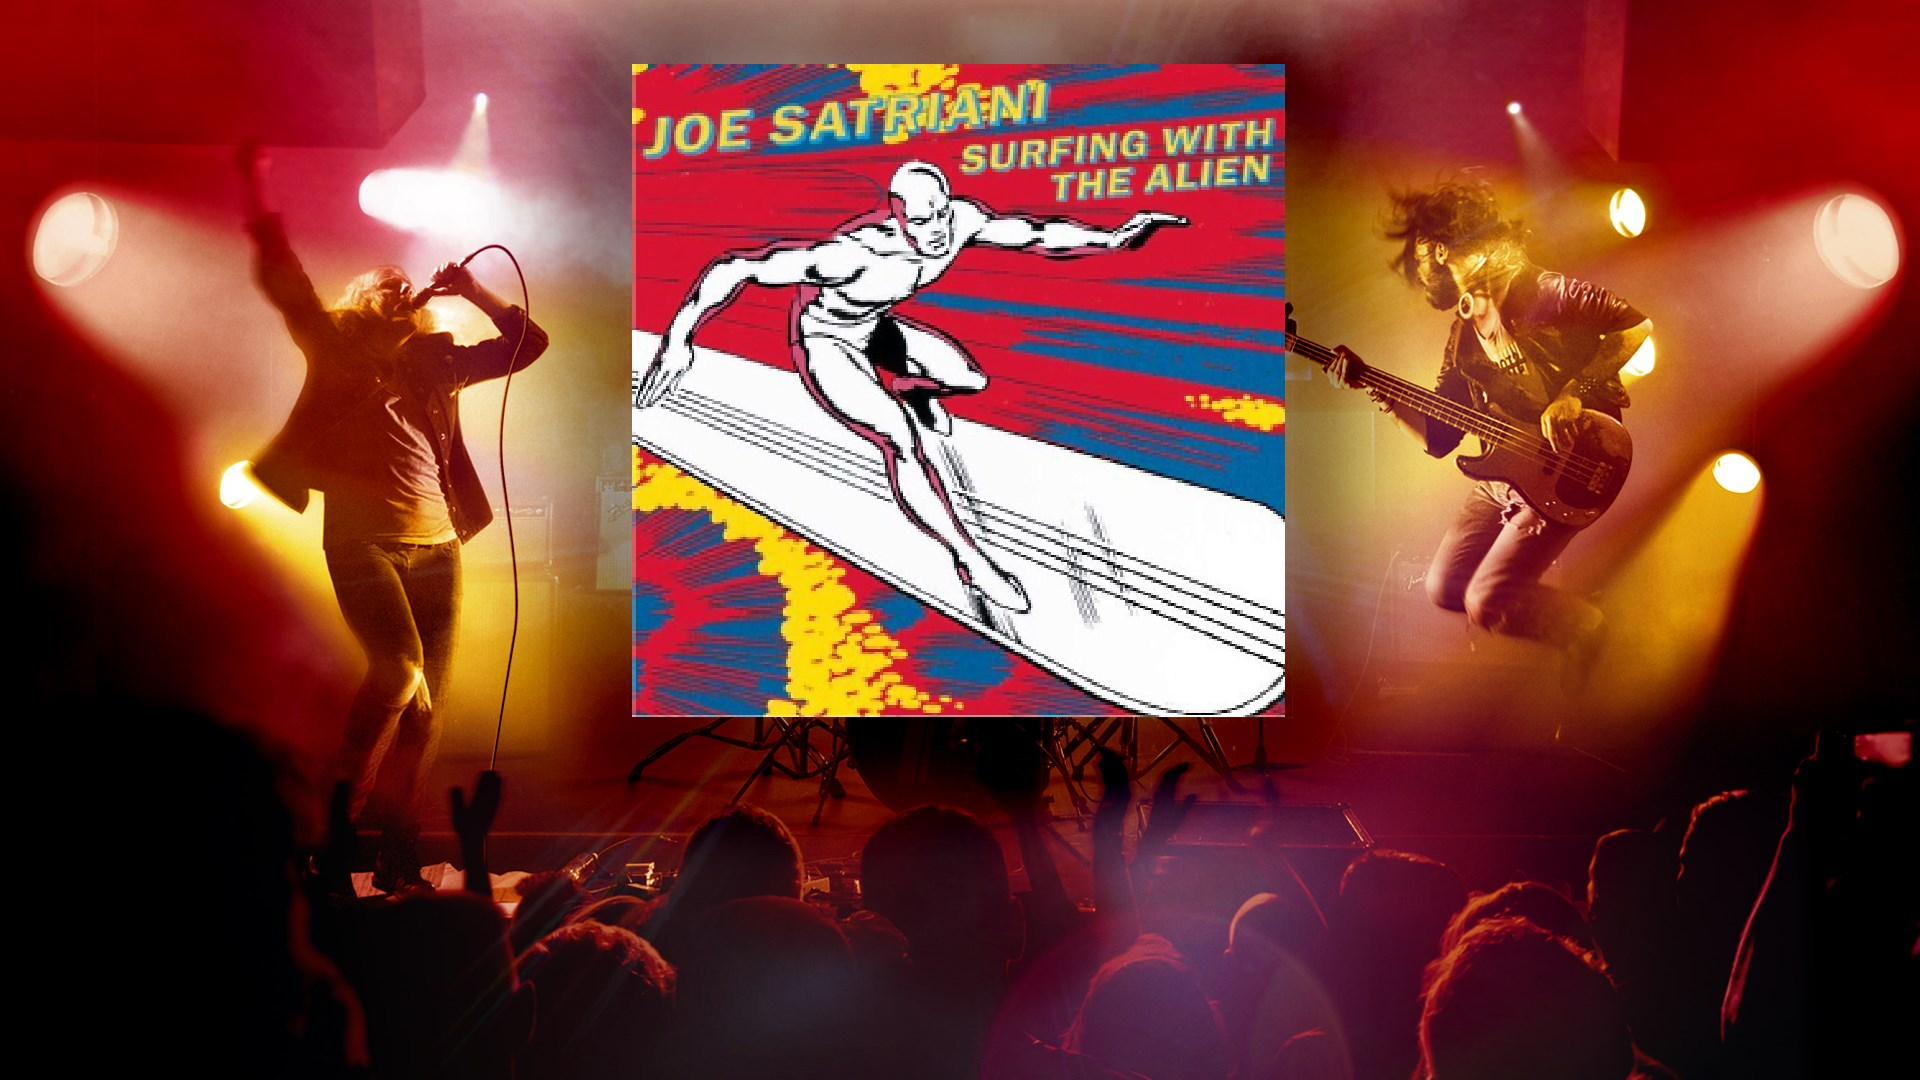 Buy Surfing With The Alien Joe Satriani Microsoft Store